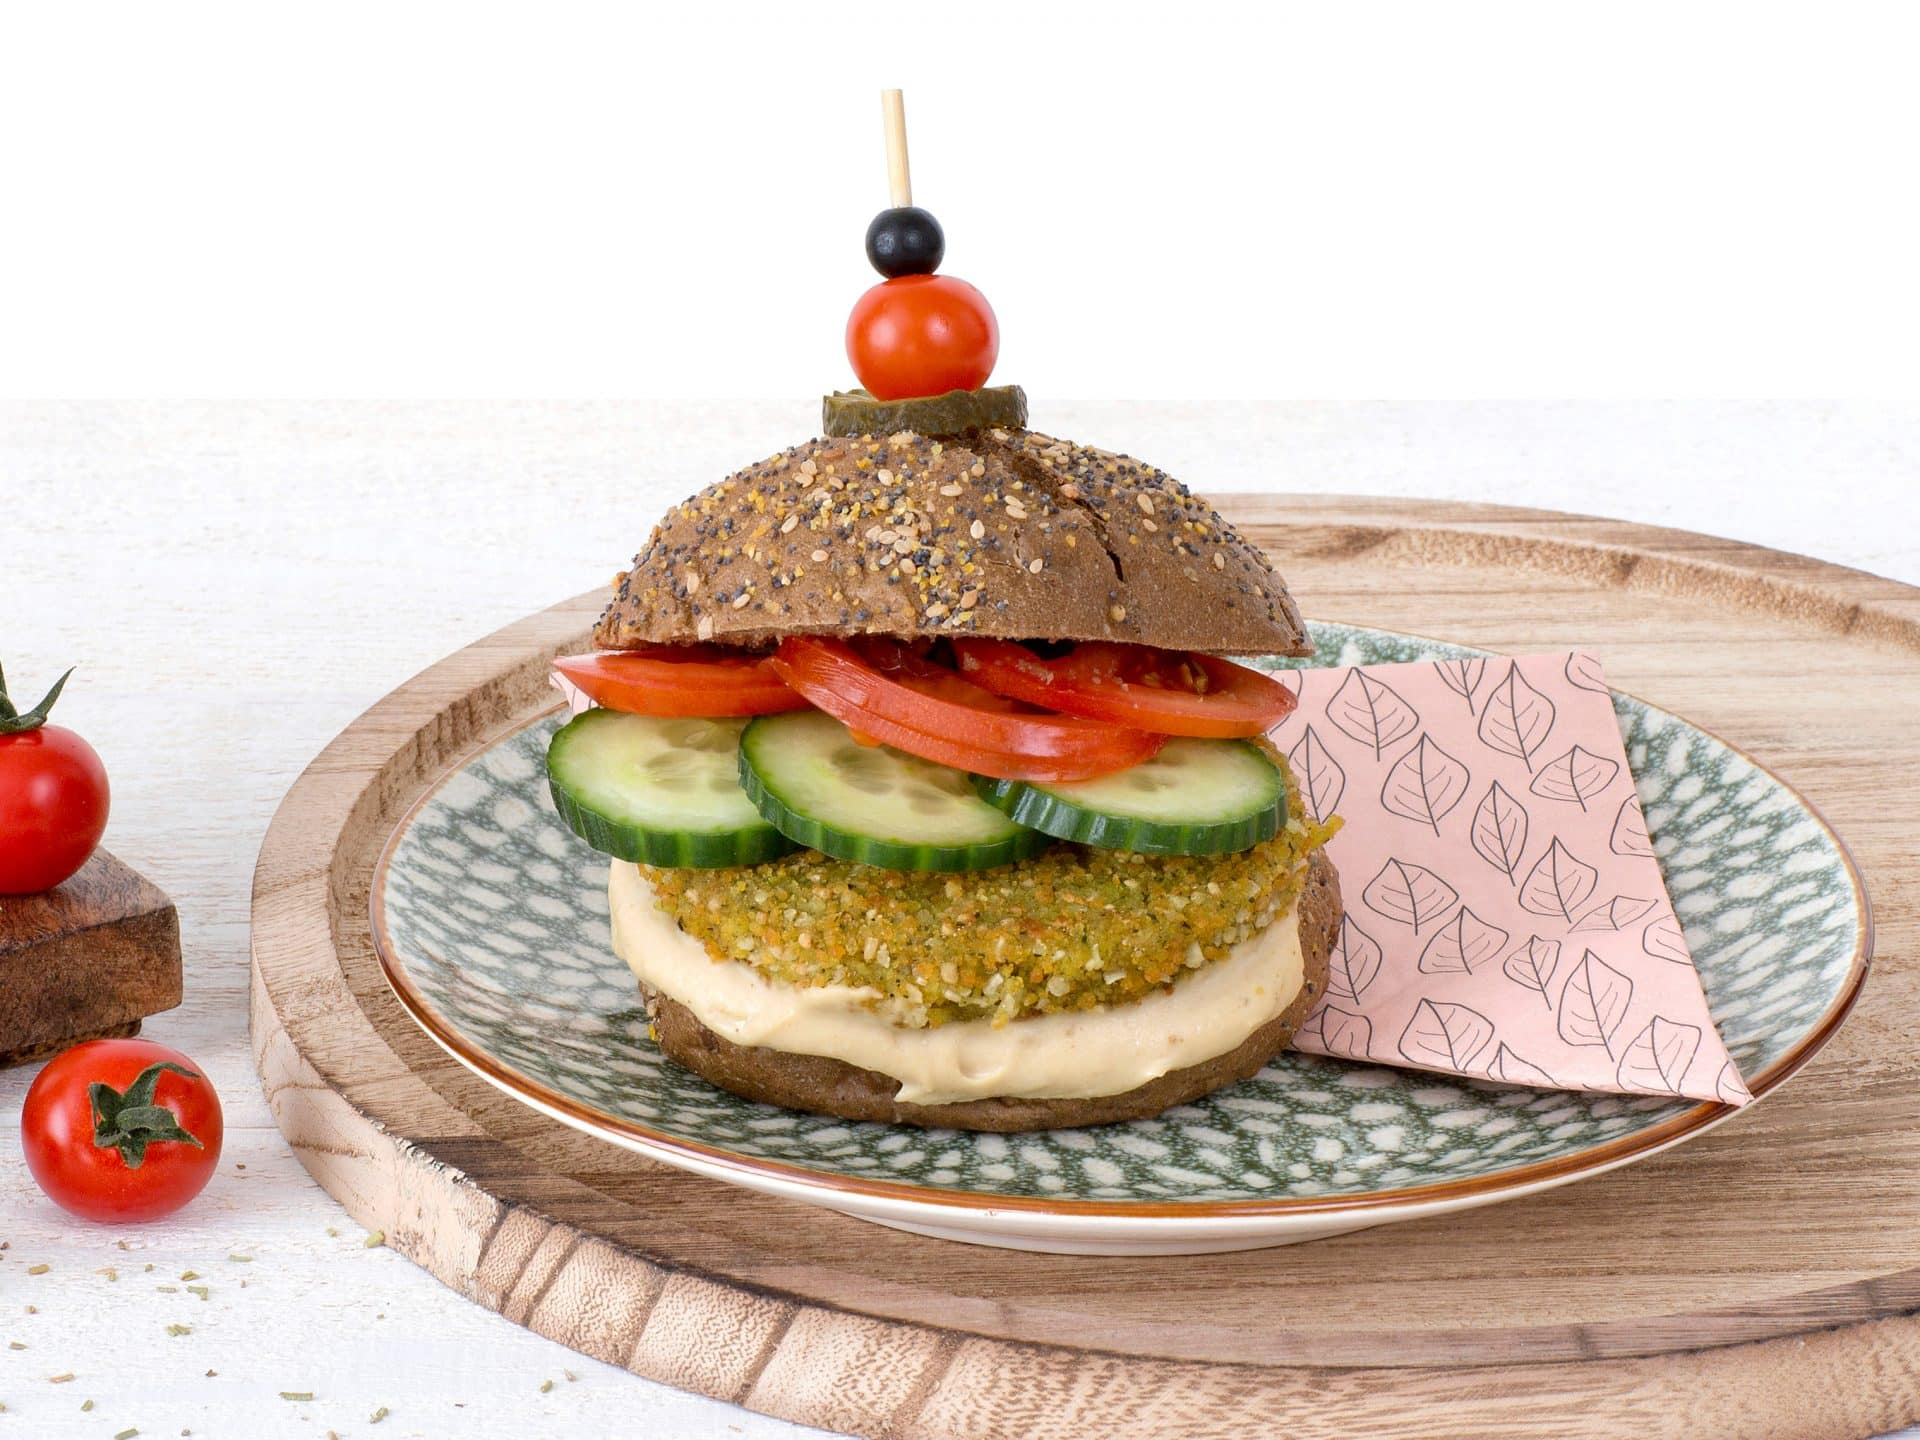 Schouten Specialist in the development of plant-based products - Meat substitute: Vegan Falafel Quinoa Burger